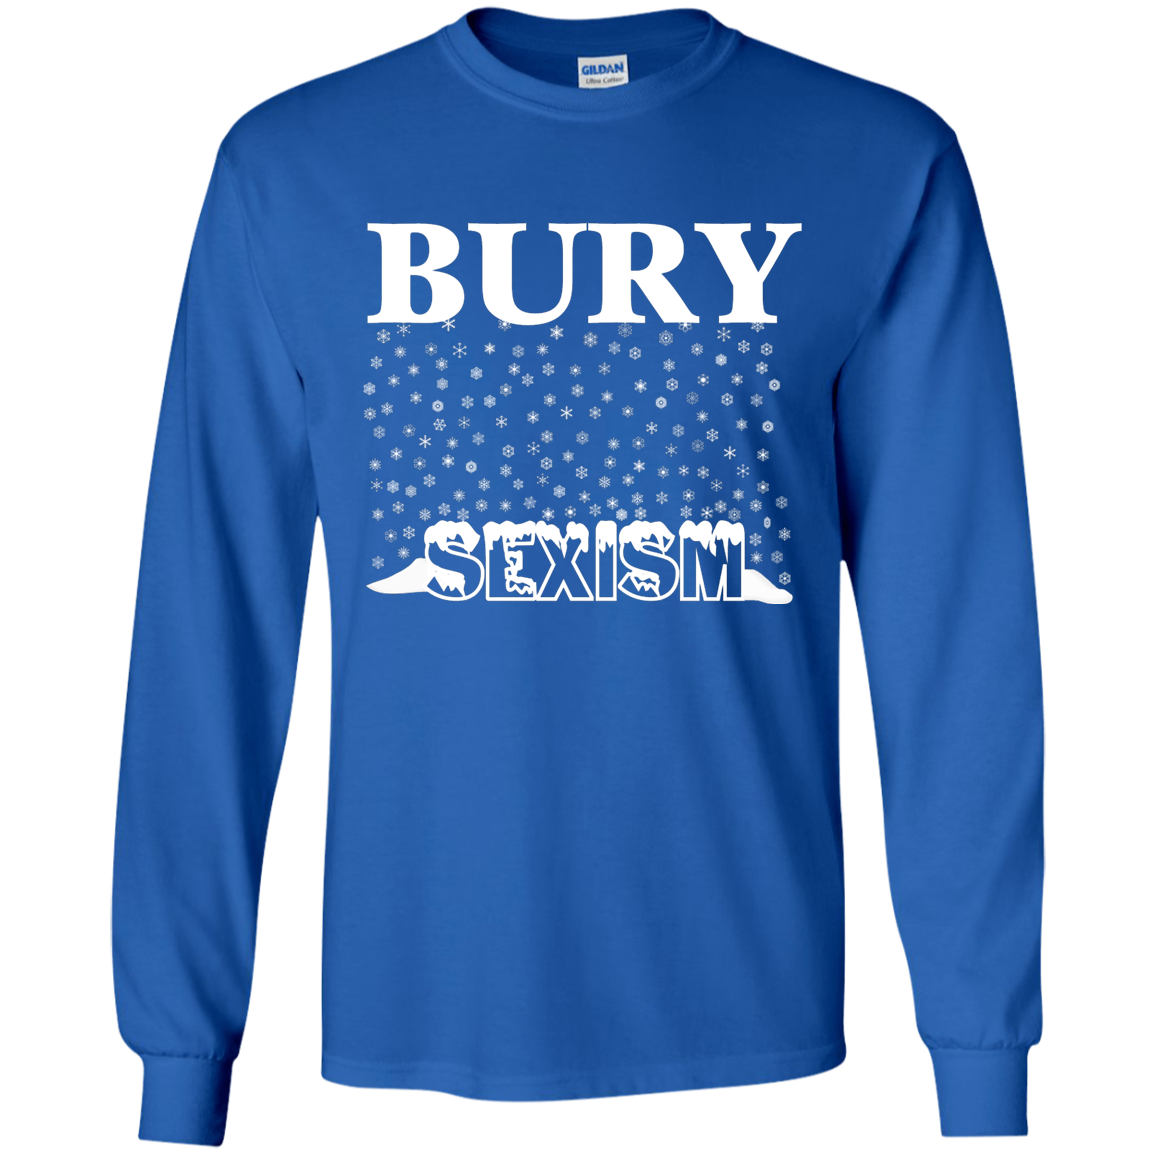 SF Bury Sexism Shirt